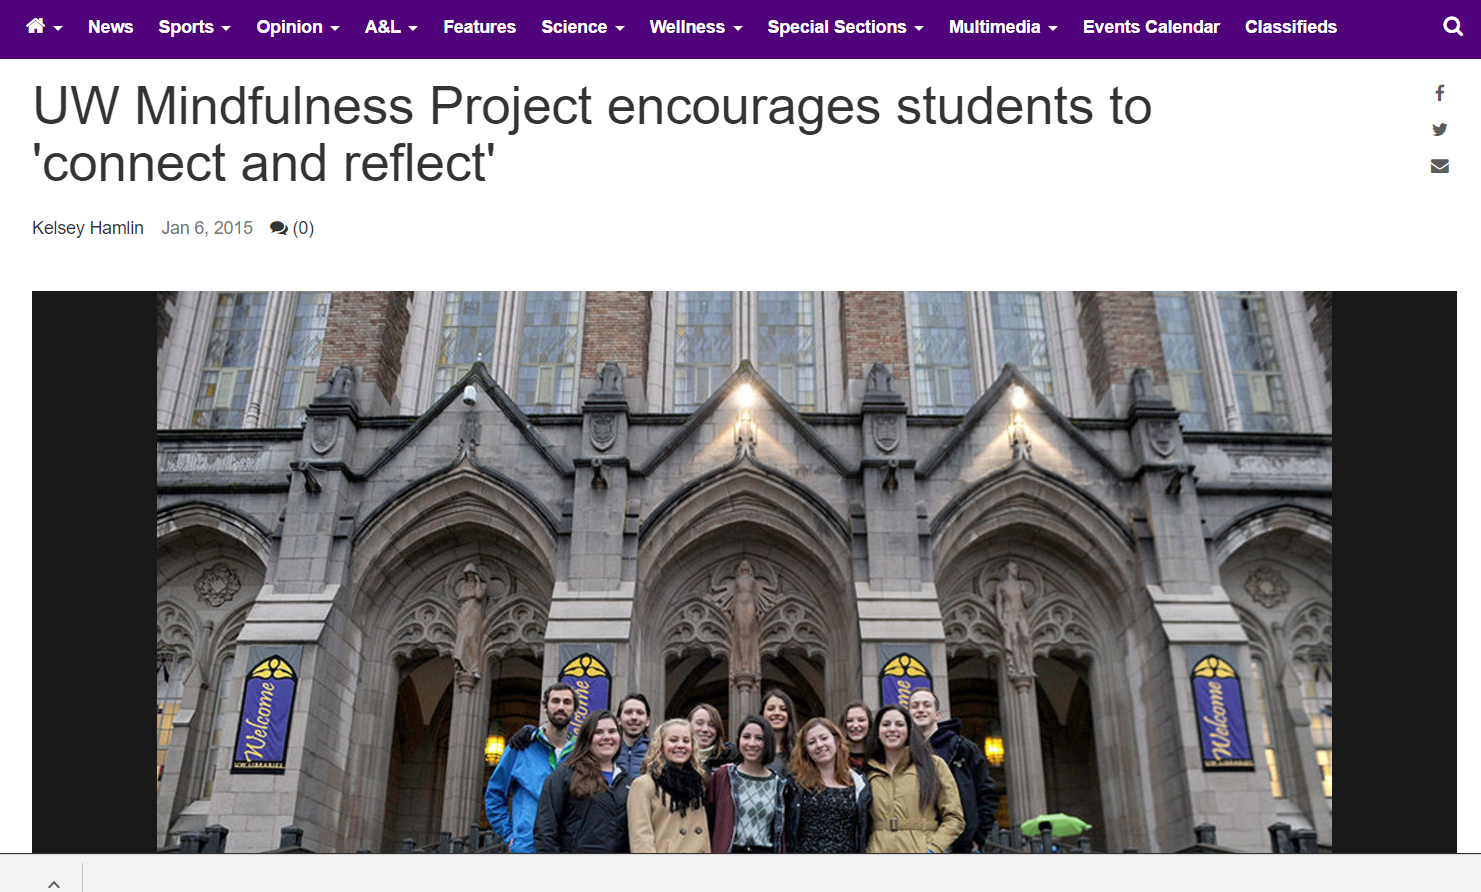 UW Mindfulness Project - Interviewed to comment on my work with the UW Mindfulness Project